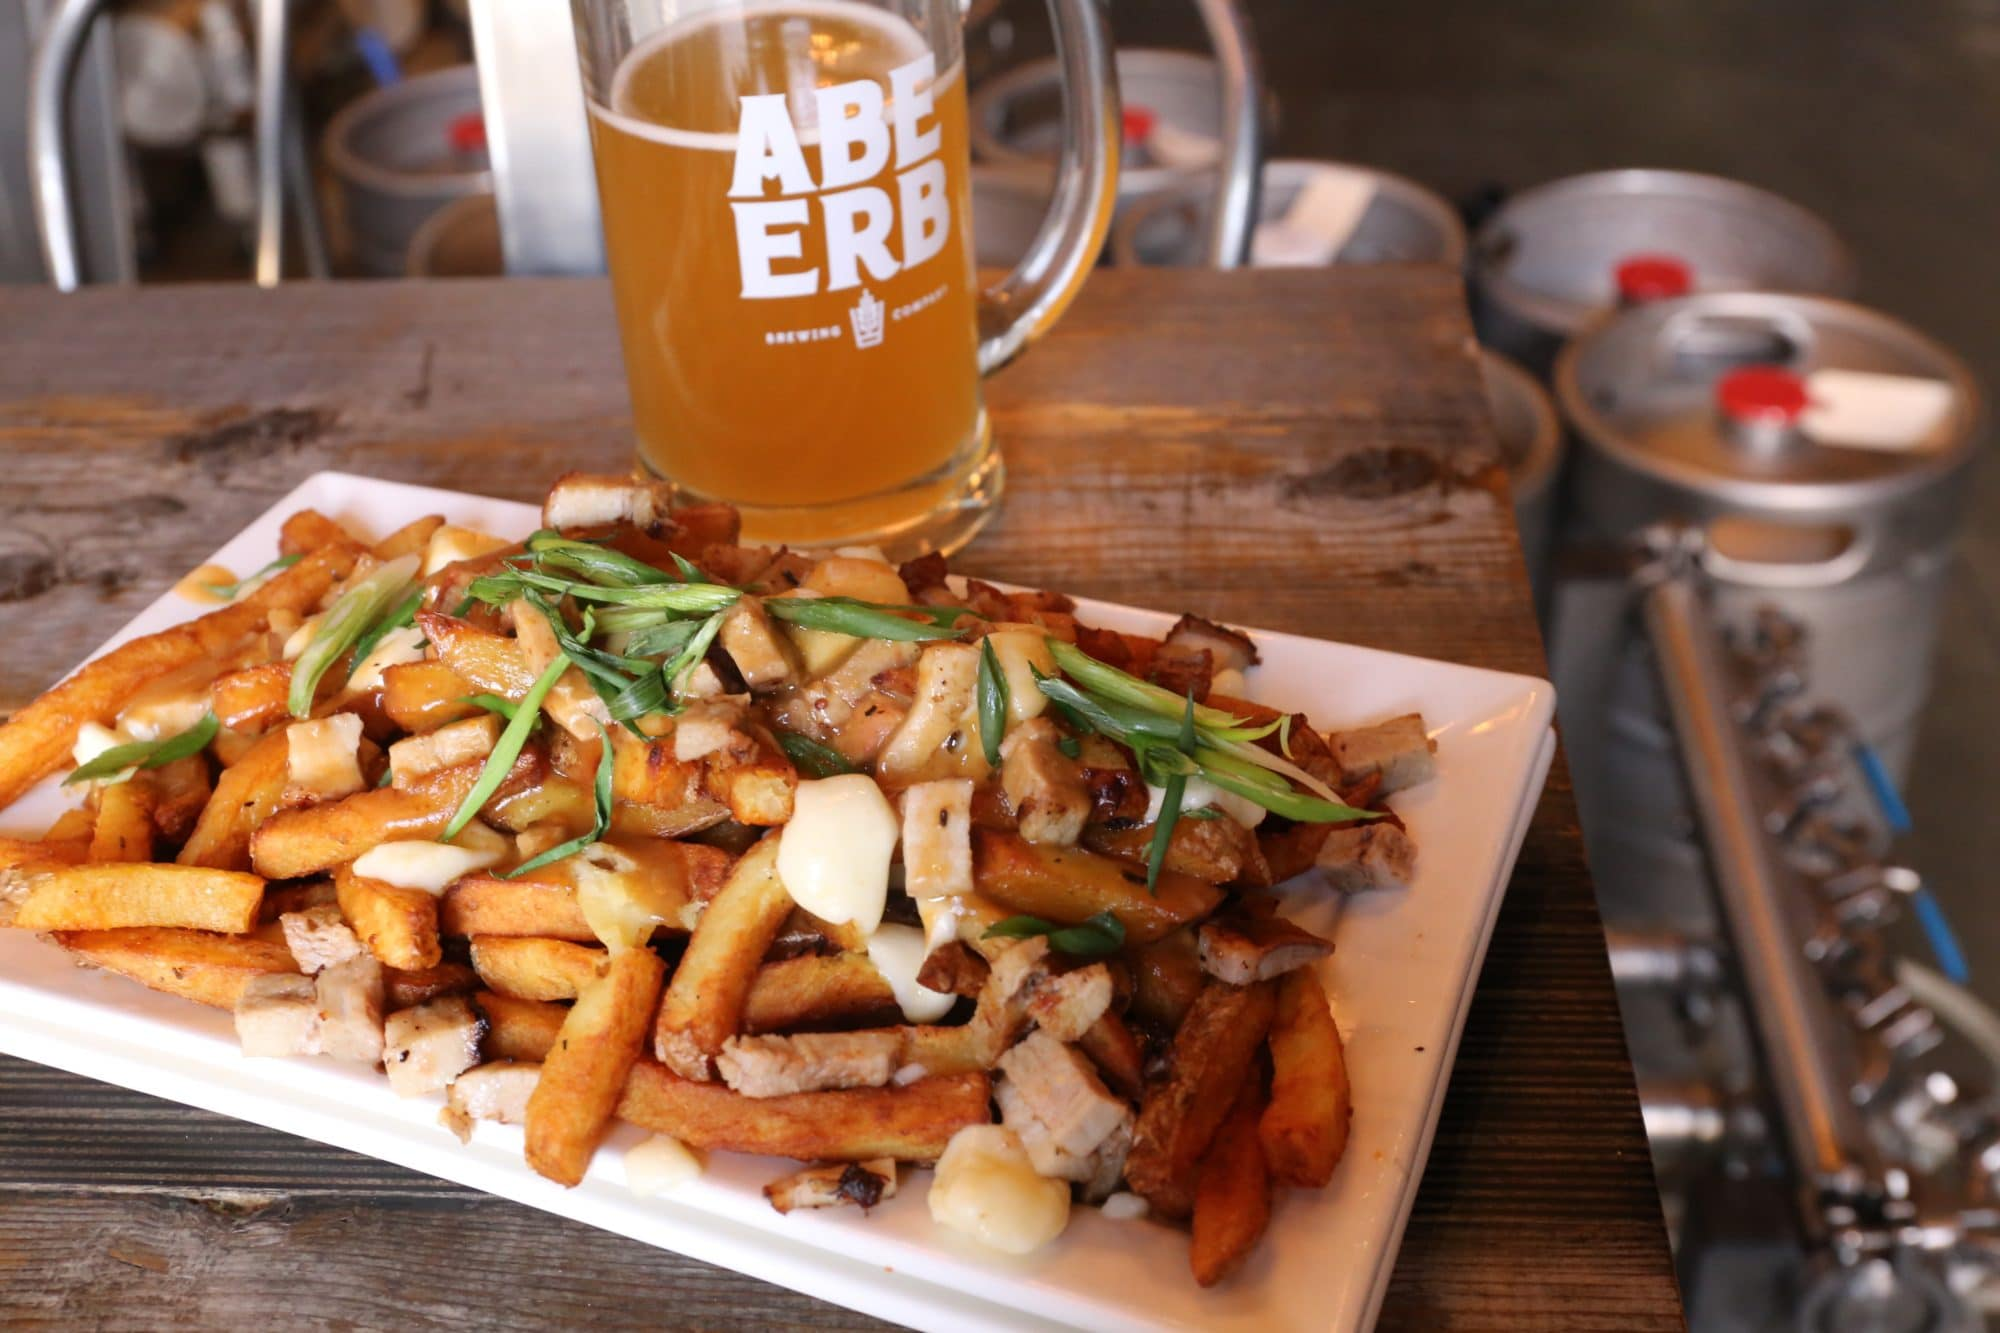 Abe Erb Waterloo: Smoked Poutine paired with a pint of freshly brewed craft beer.